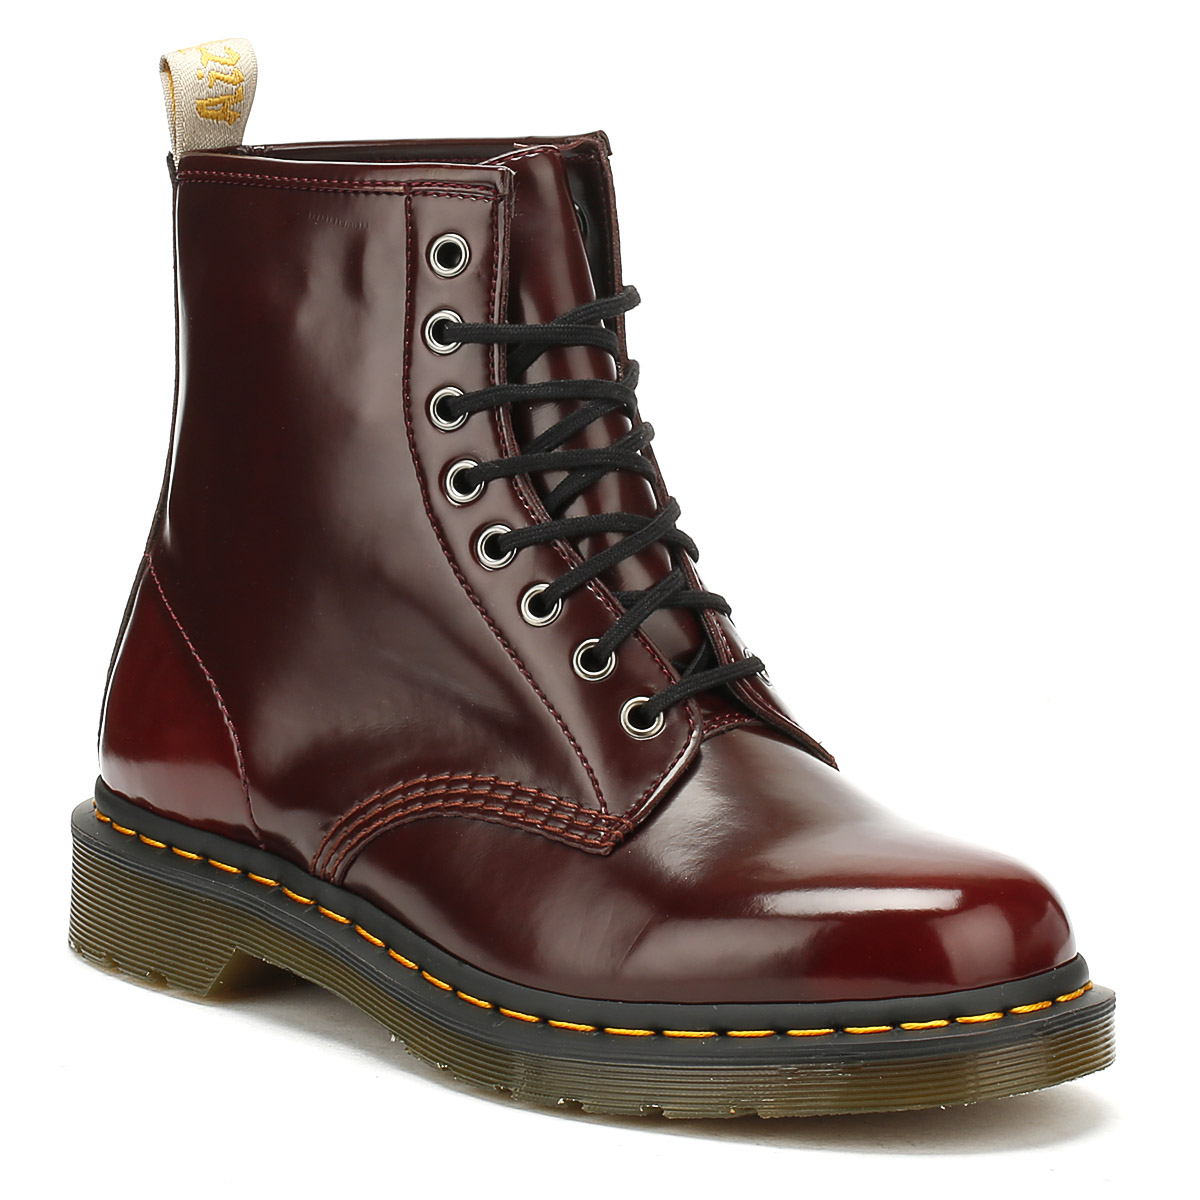 Dr. Martens Up Unisex Stiefel Cherry ROT Vegan 1460 Lace Up Martens Winter Ankle Schuhes a408b4